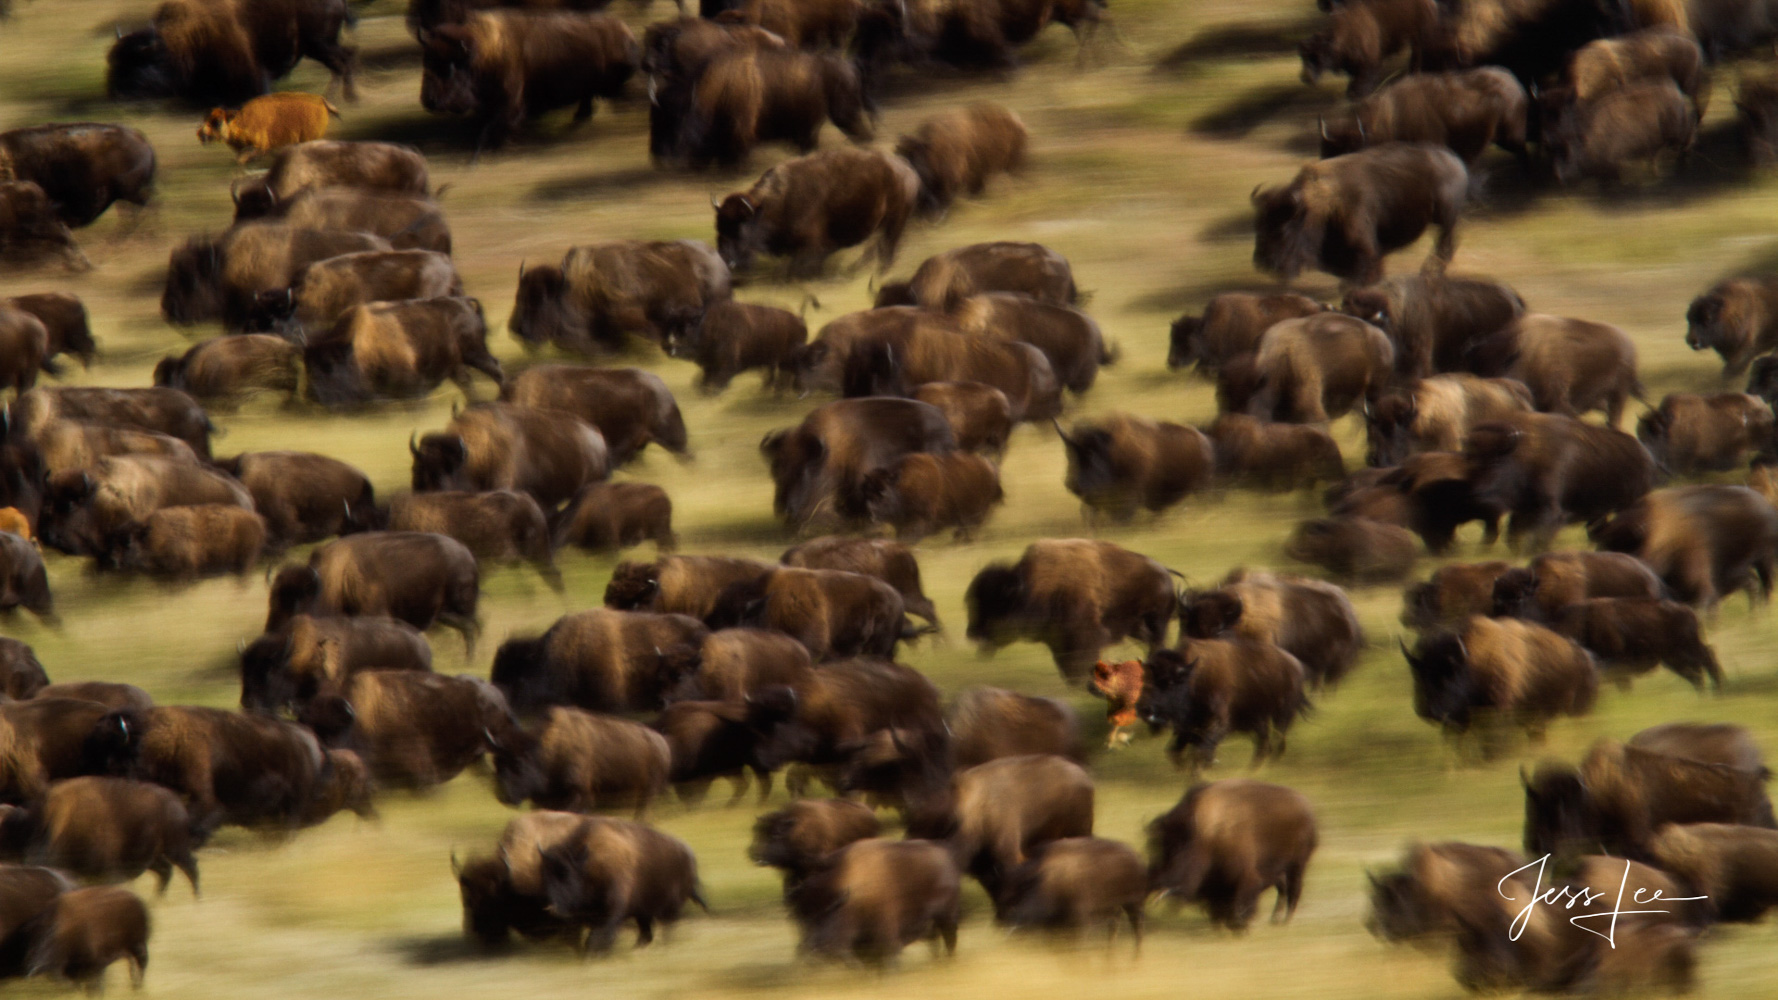 Stampeding  Bison or Buffalo Herd with new calves., photo